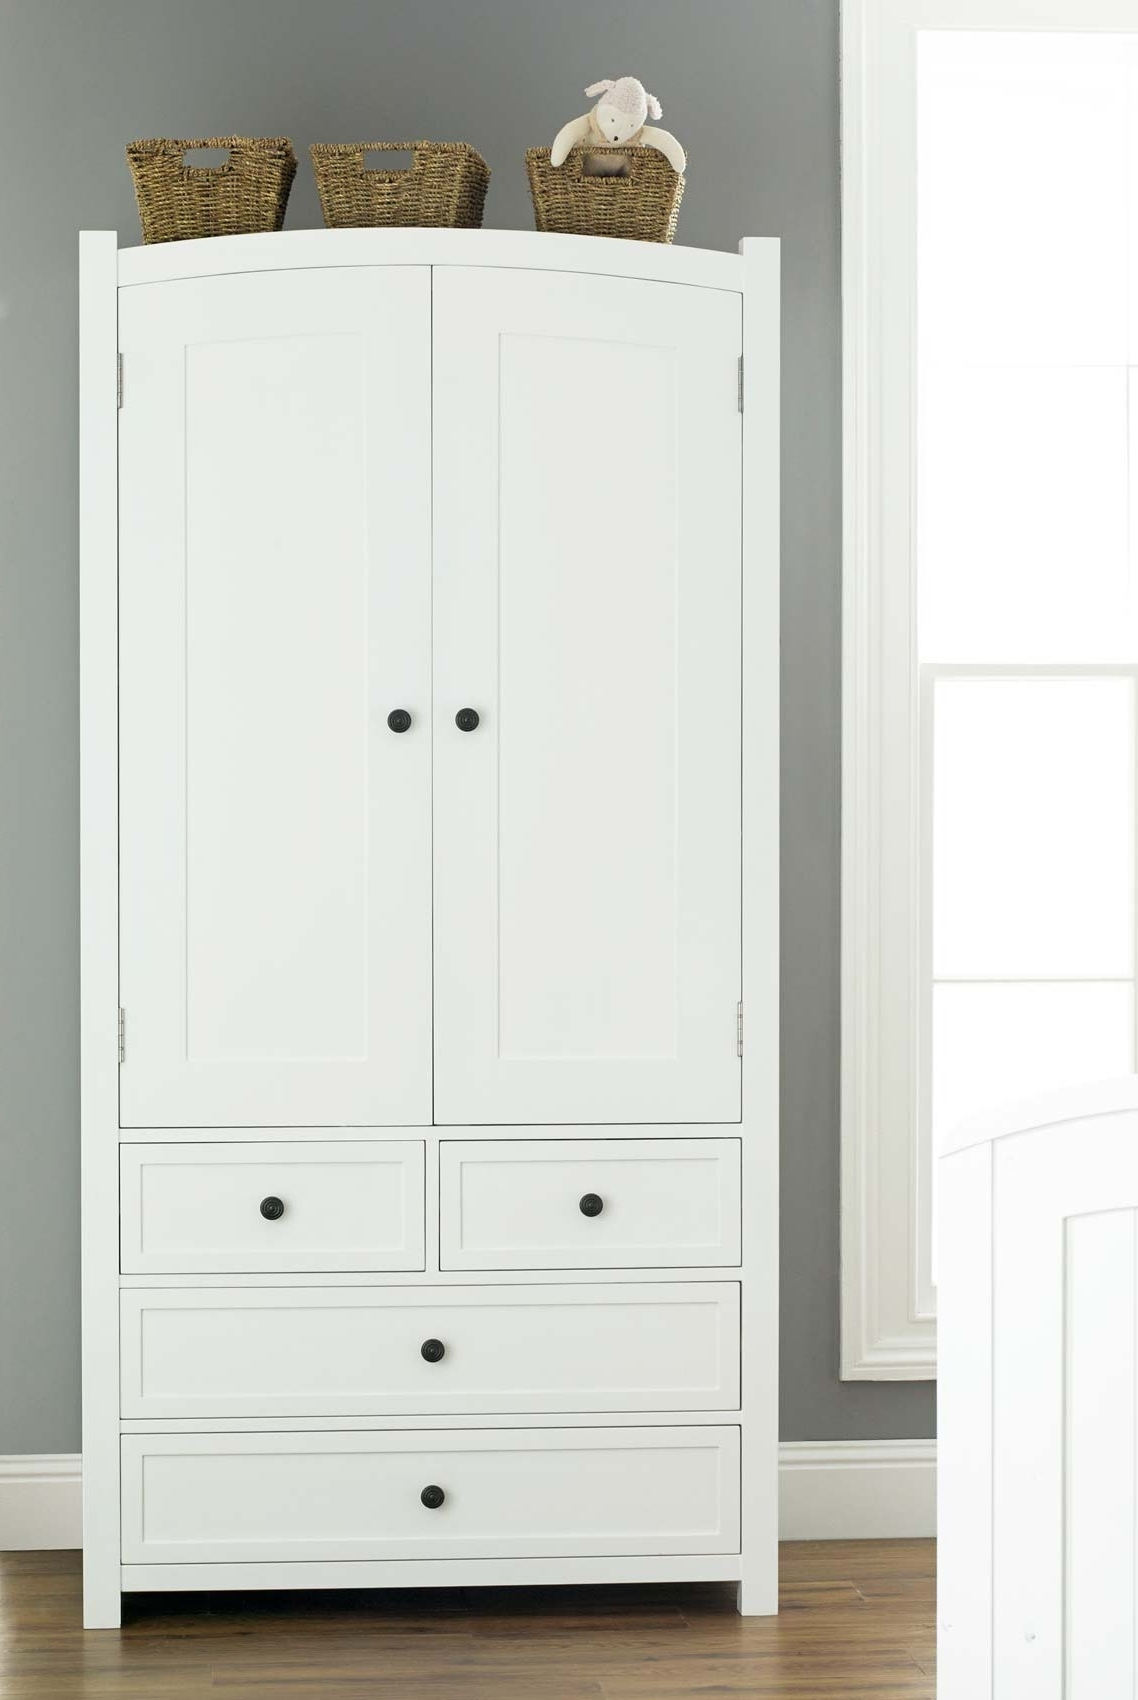 2017 Wardrobes With Drawers And Shelves In Ceiling To Floor White Wooden Wardrobe Closet With Ladder Shelves (View 1 of 15)